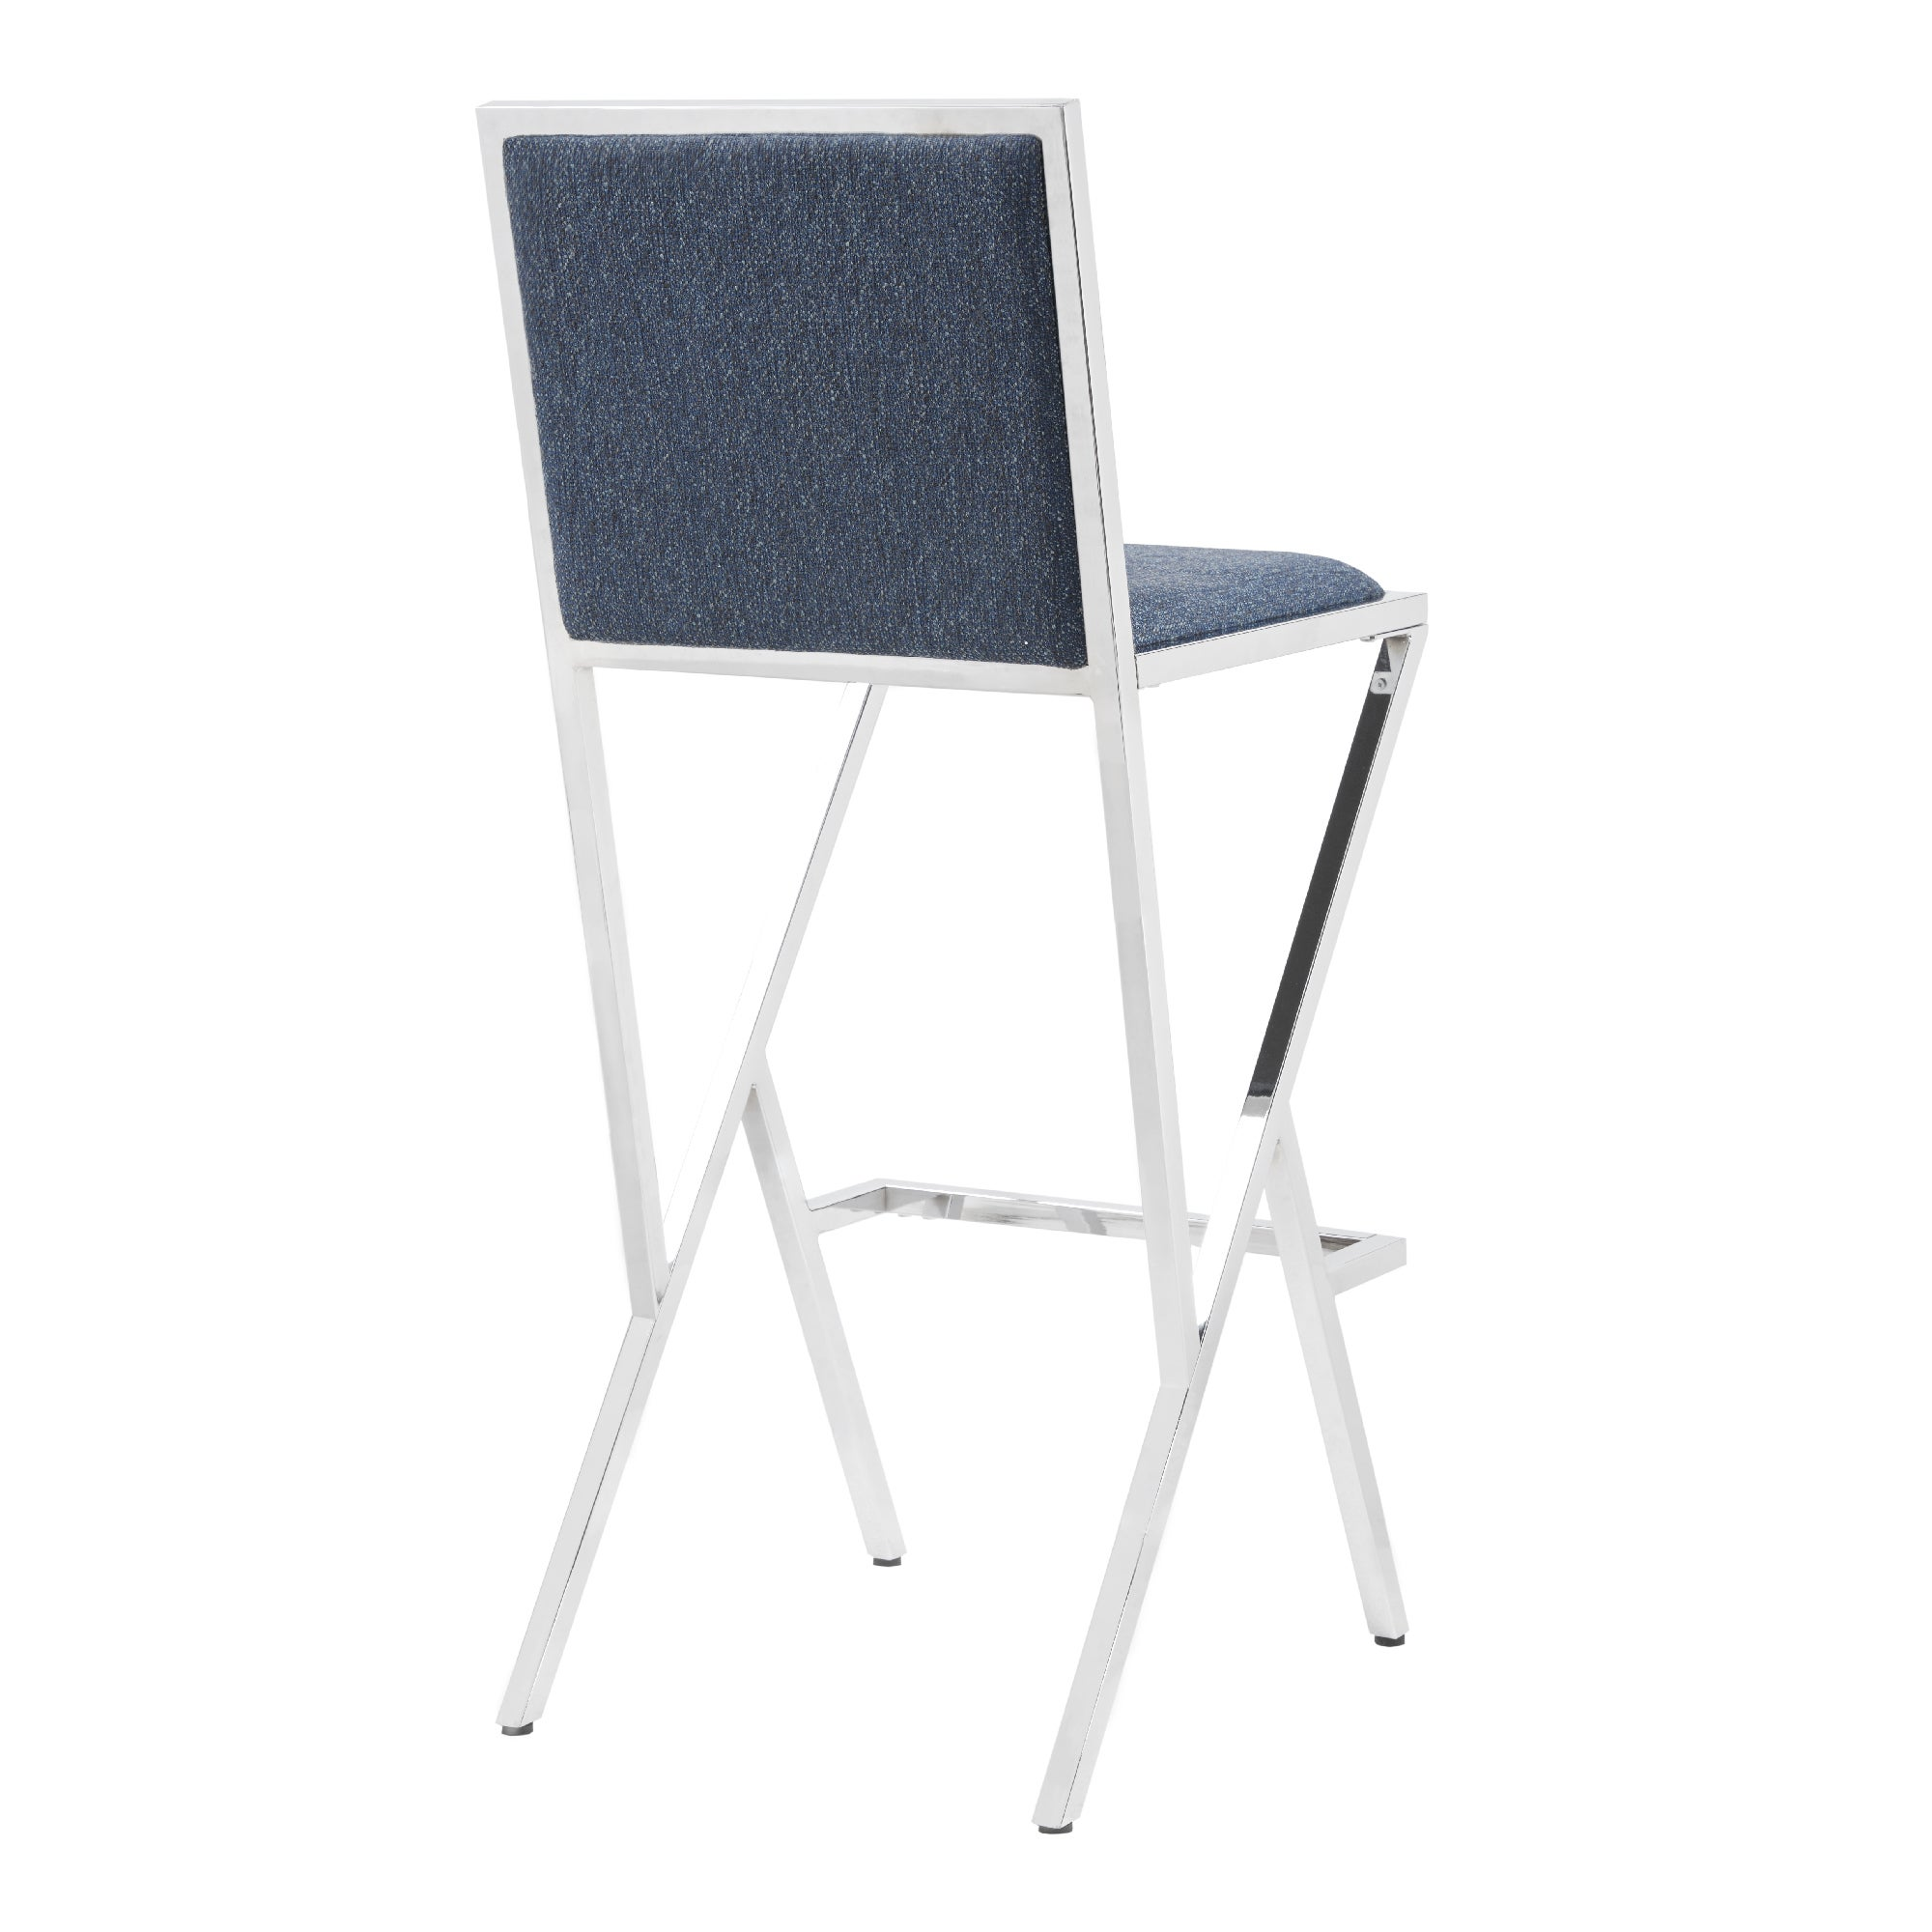 Shop Ink+Ivy Obsidian Blue/ Chrome Fabric/ Metal Bar Height Directoru0027s Chair    Free Shipping Today   Overstock.com   19387503